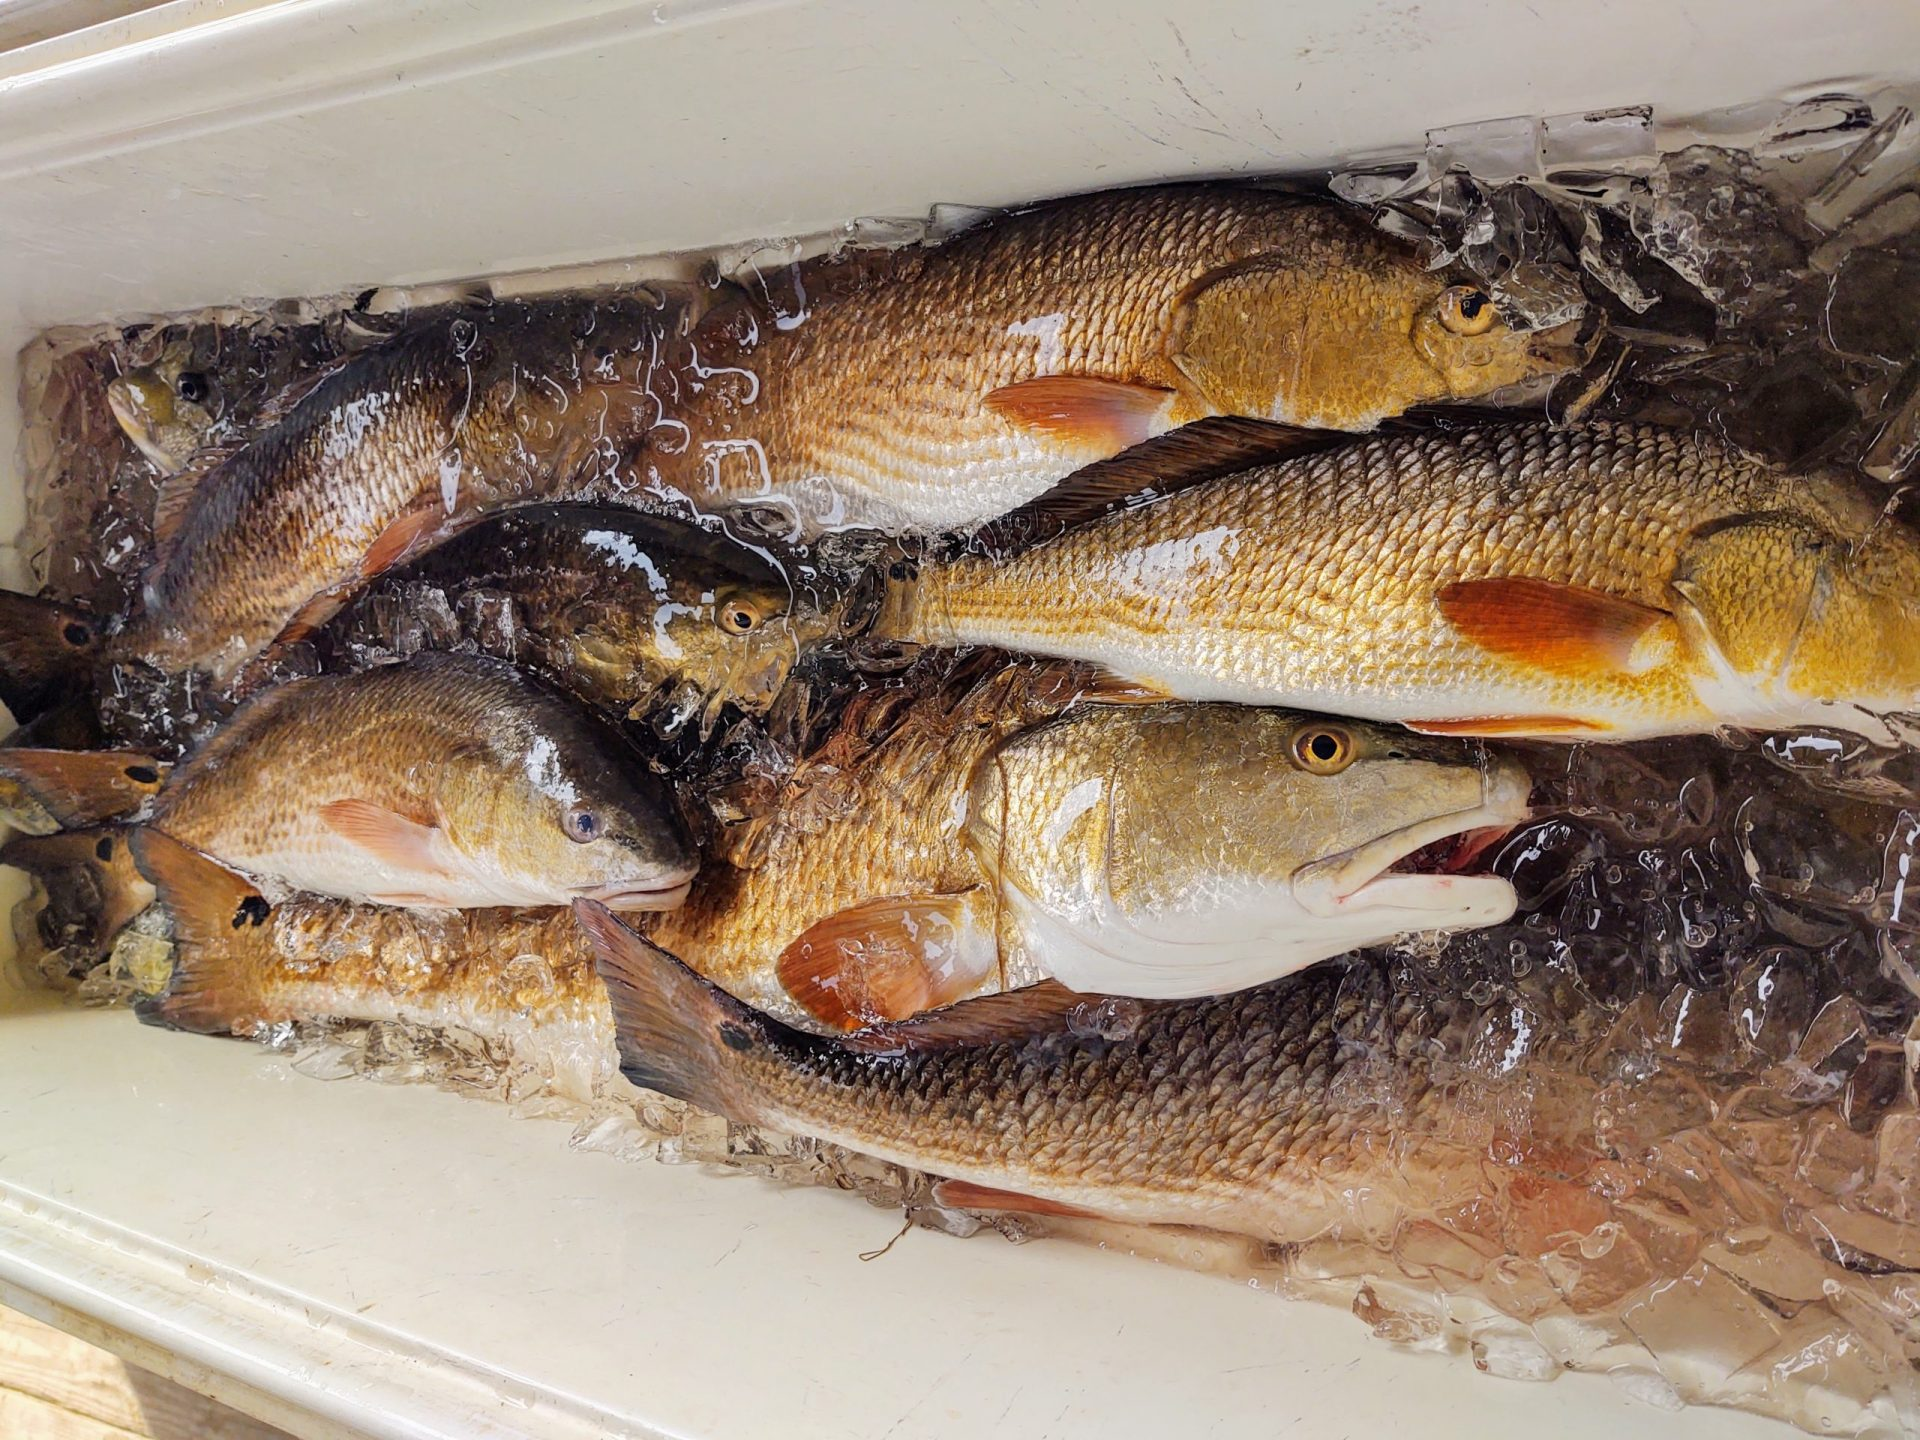 Guided Louisiana Fishing Charter - Redfish Nation - Redfish In Ice Chest